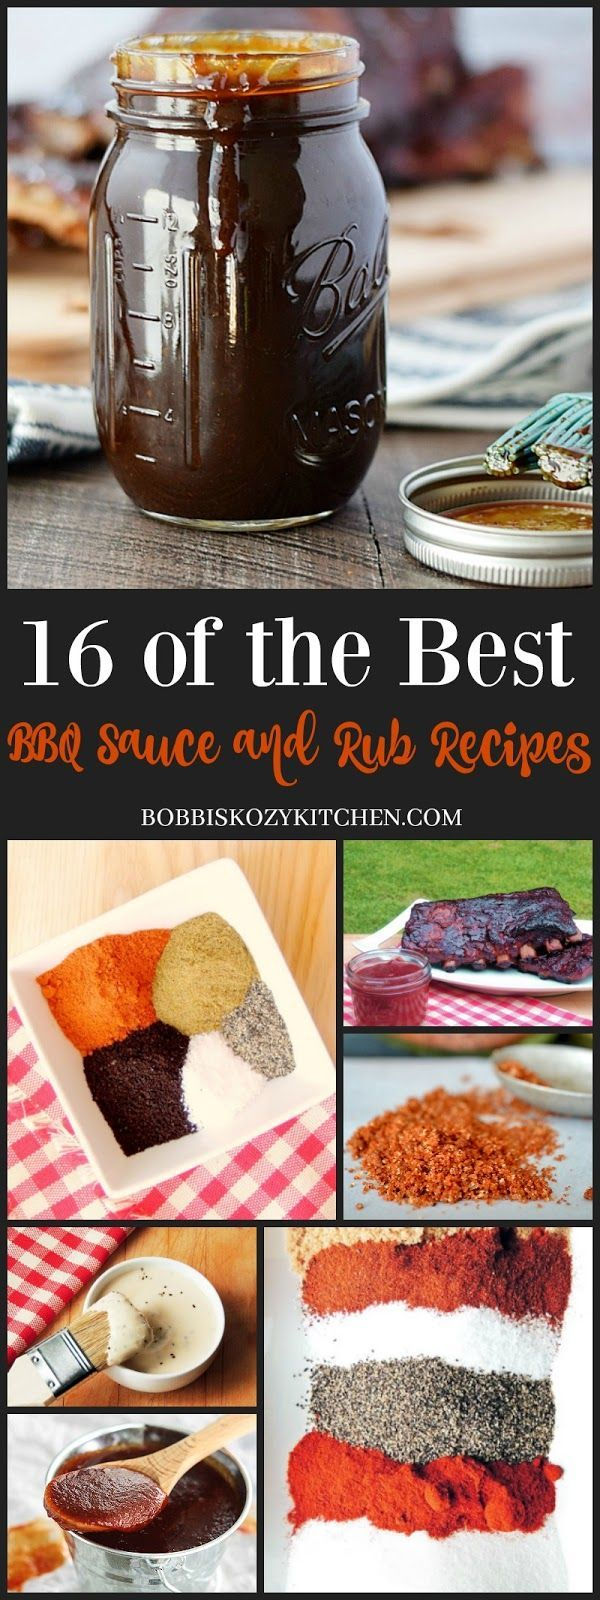 cool 16 of the Best BBQ Sauce and Rub Recipes from www.bobbiskozykit......by http://dezdemooncooking.gdn